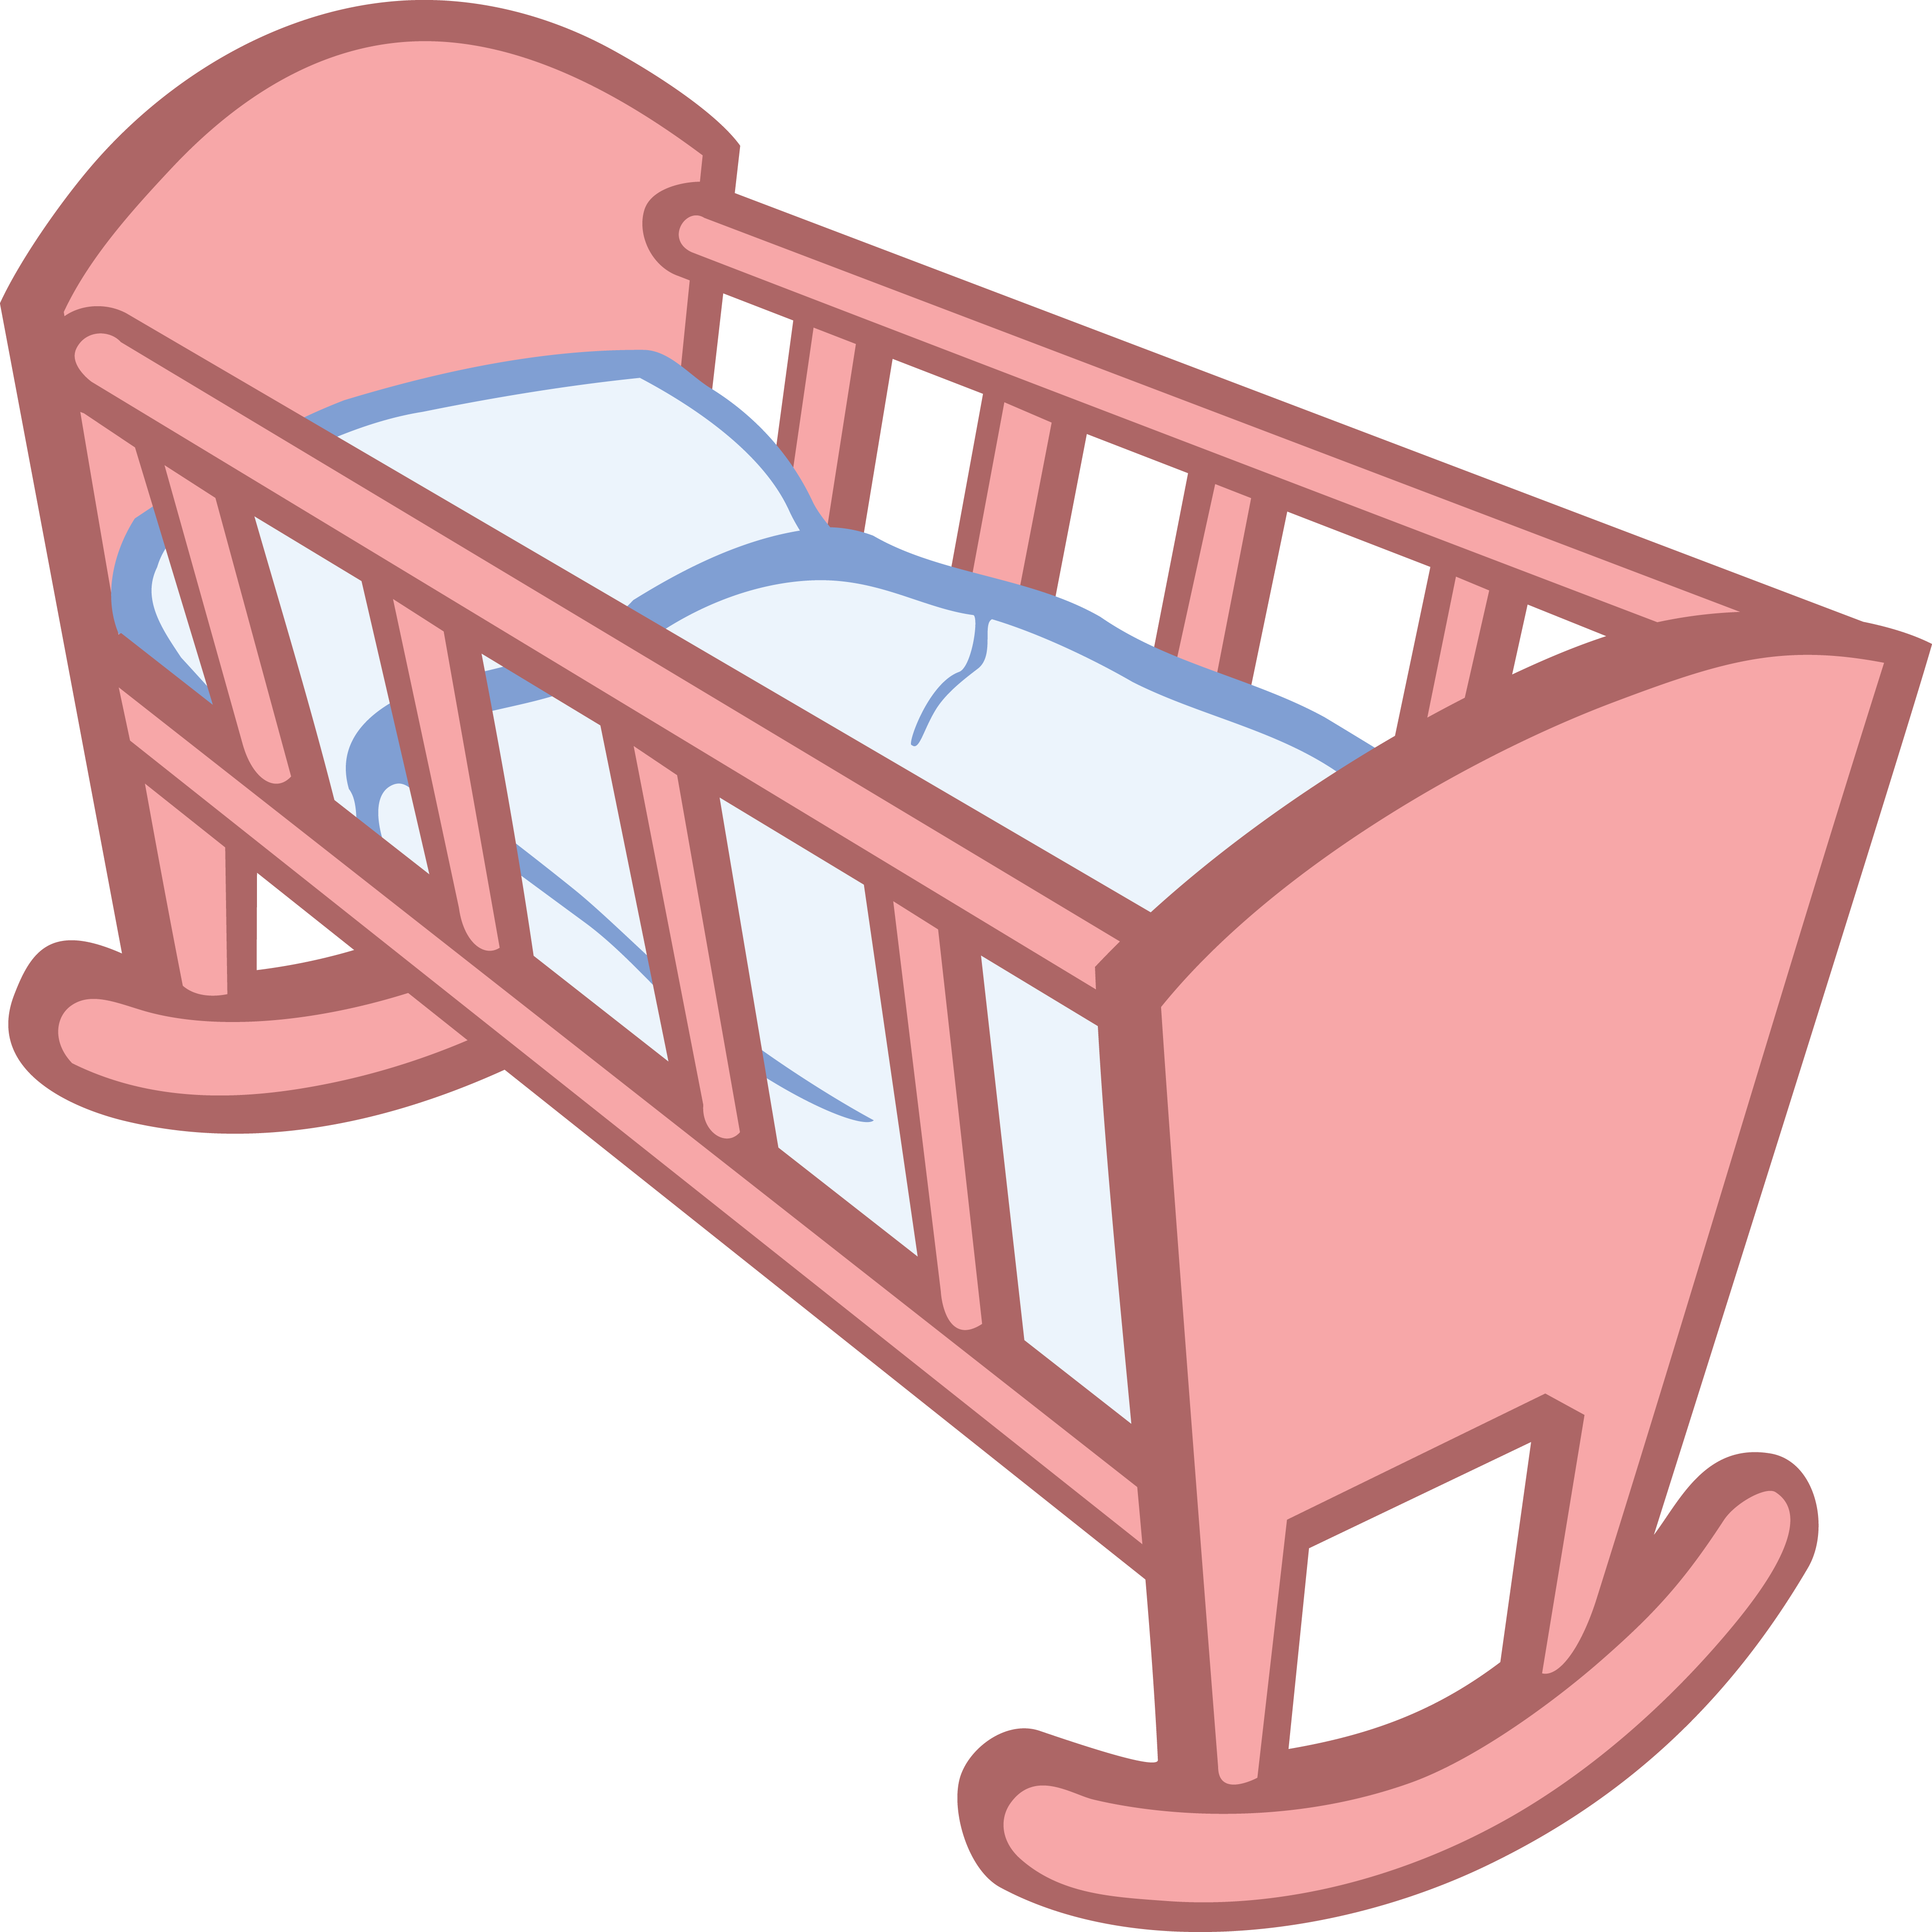 Crib clipart cartoon Transparent pictures on F.